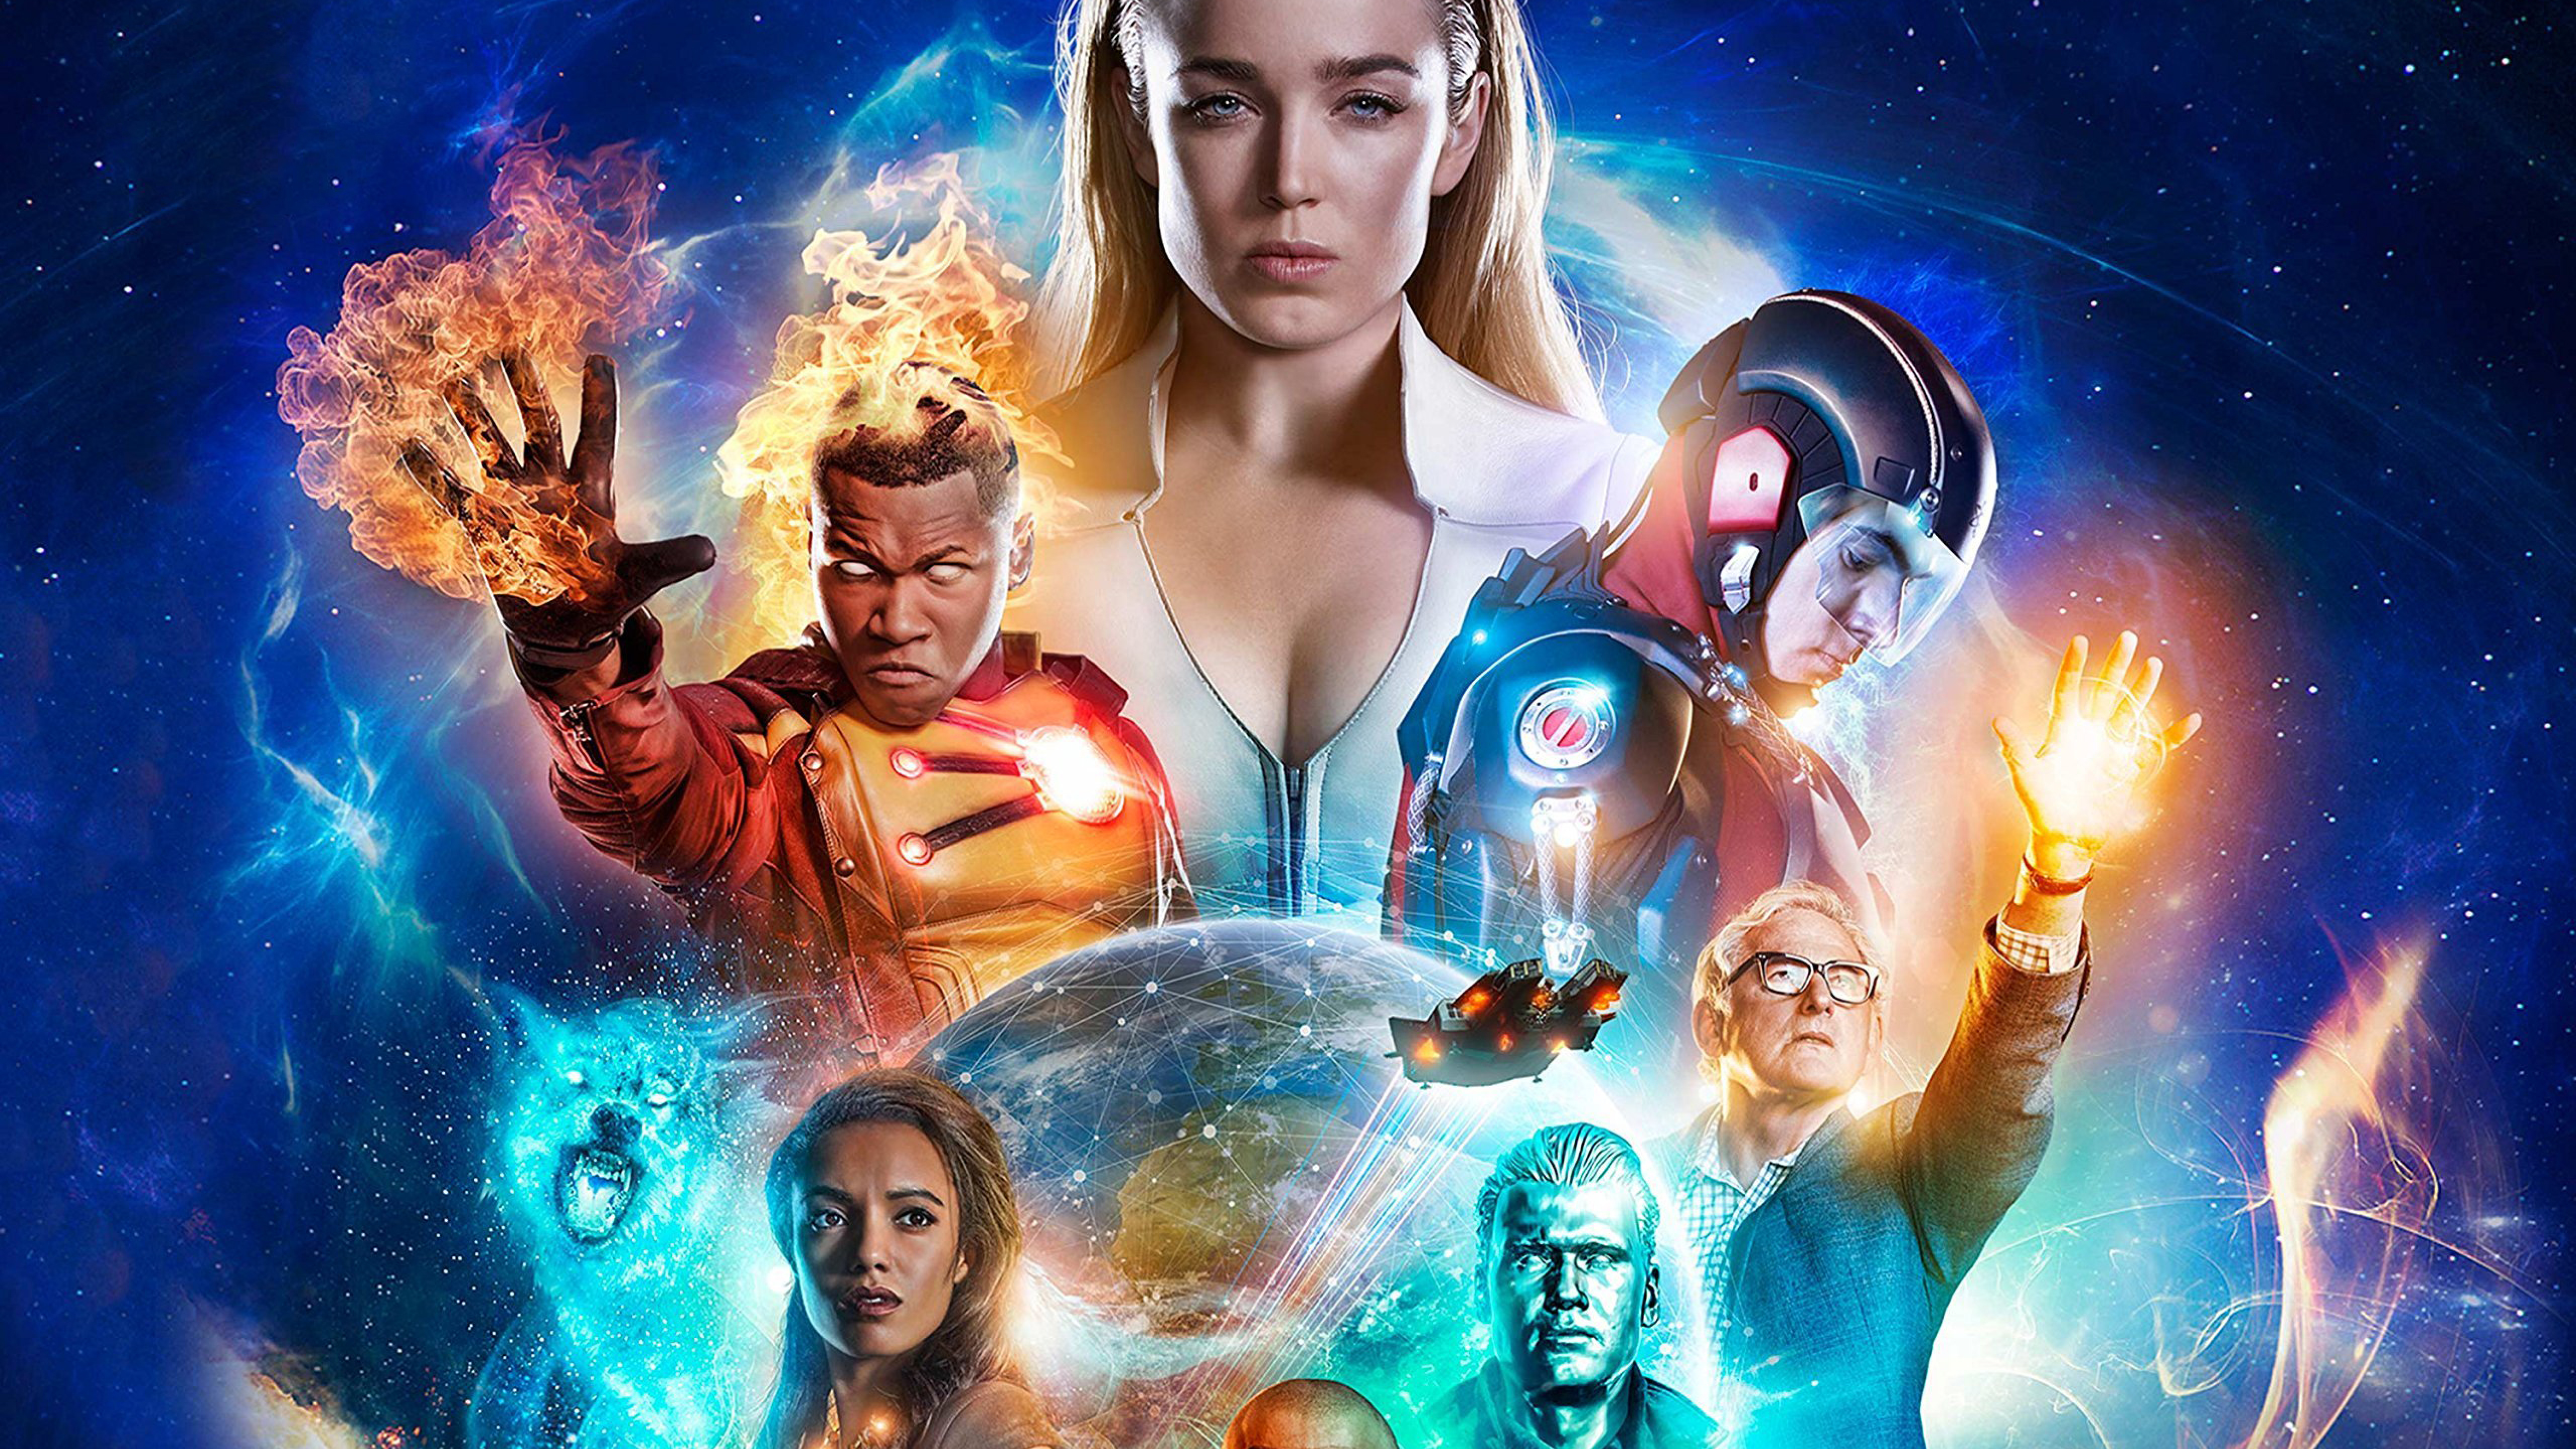 Dc S Legends Of Tomorrow Wallpaper And Background Image: Legends Of Tomorrow, Full HD 2K Wallpaper